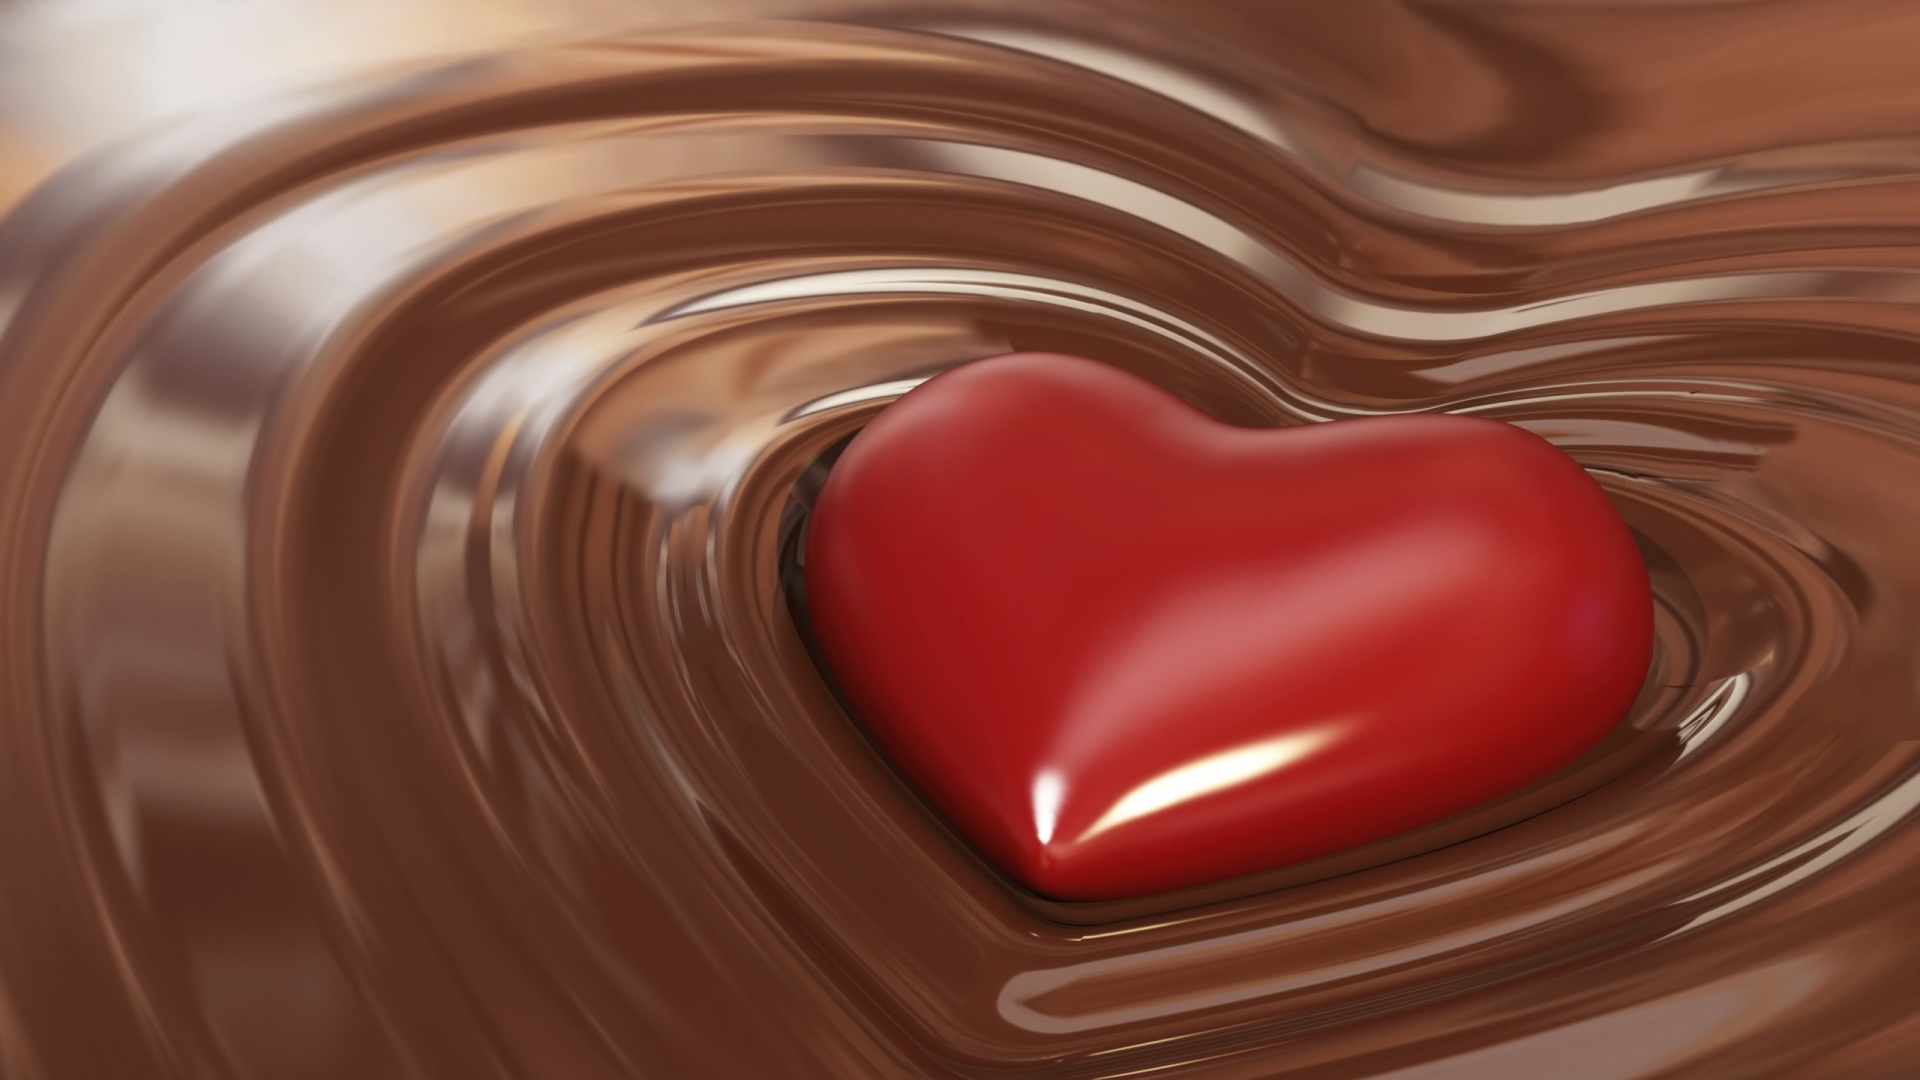 Description: The Wallpaper above is Heart in Chocolate Wallpaper in Resolution 1920x1080. Choose your Resolution and Download Heart in Chocolate Wallpaper